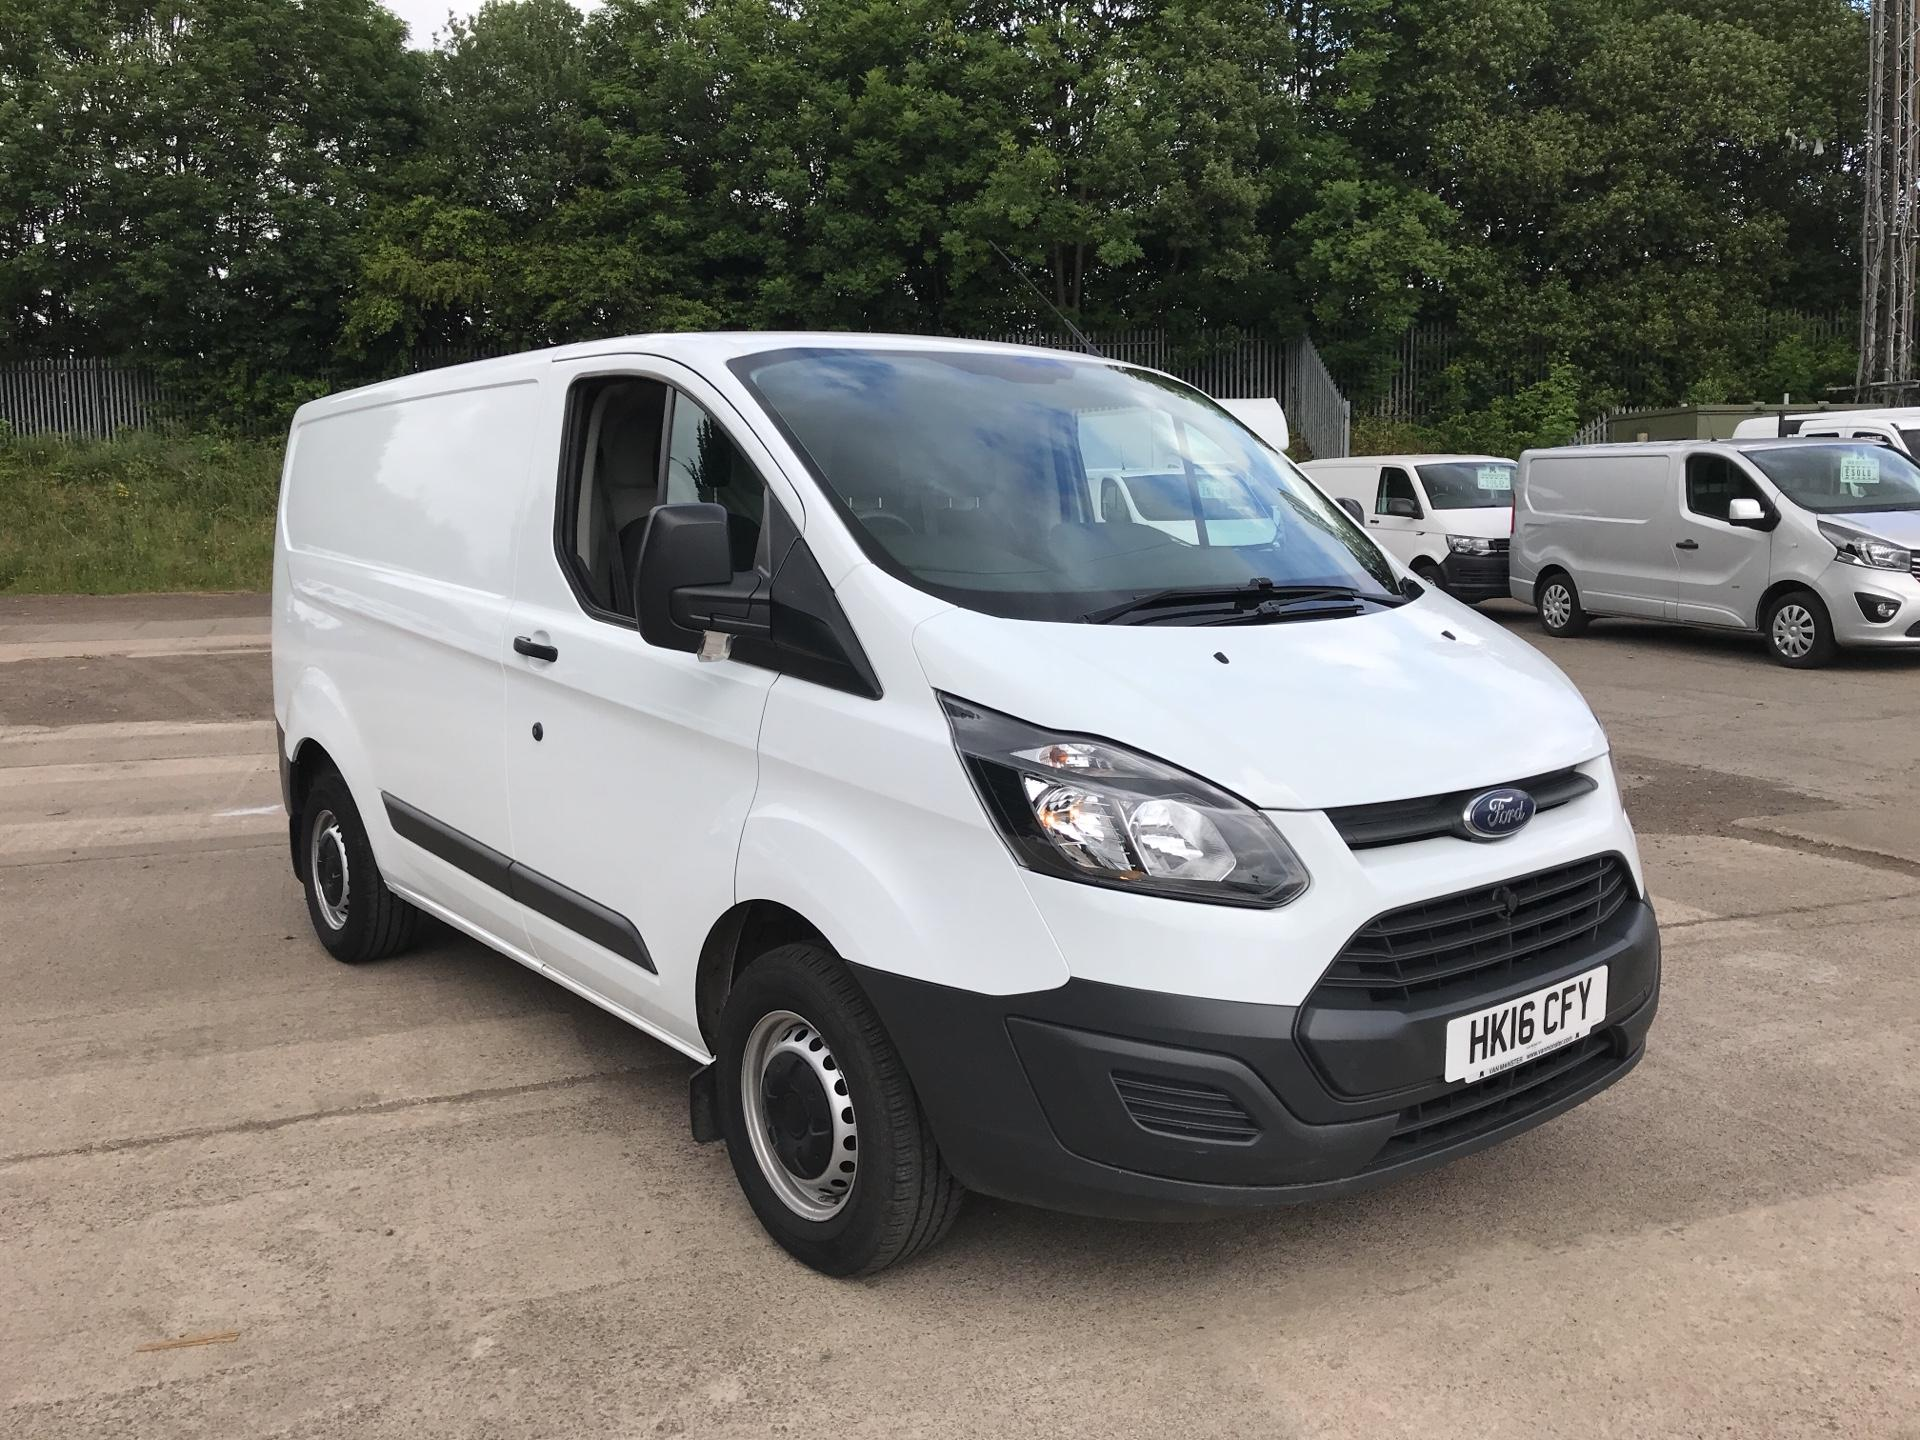 2016 Ford Transit Custom 290 L1 DIESEL FWD 2.2 TDCI 100PS LOW ROOF VAN EURO 5 (HK16CFY)